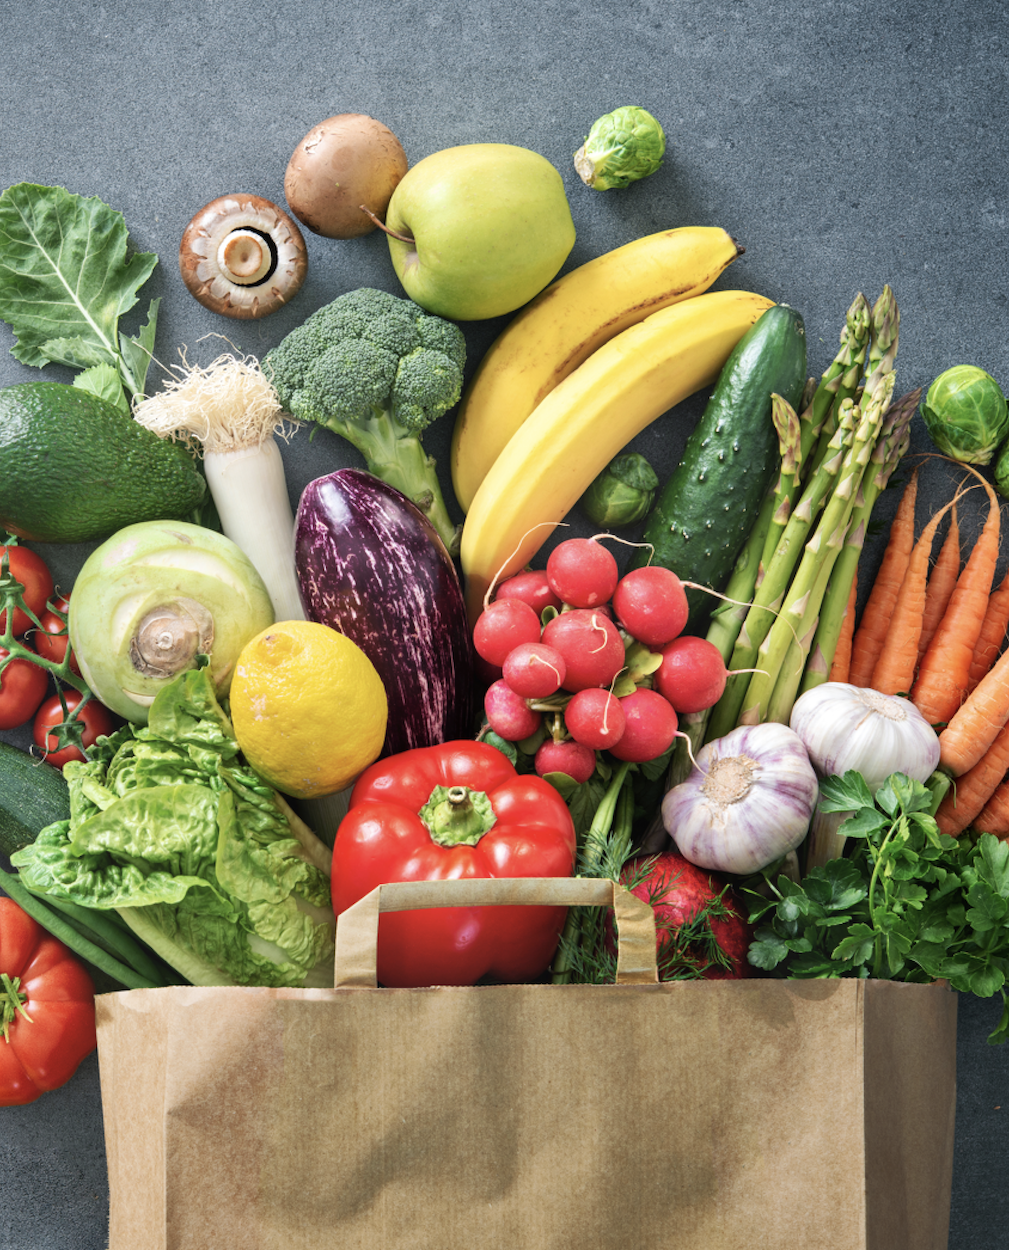 Eat smart, nutritious foods everyday of the week.